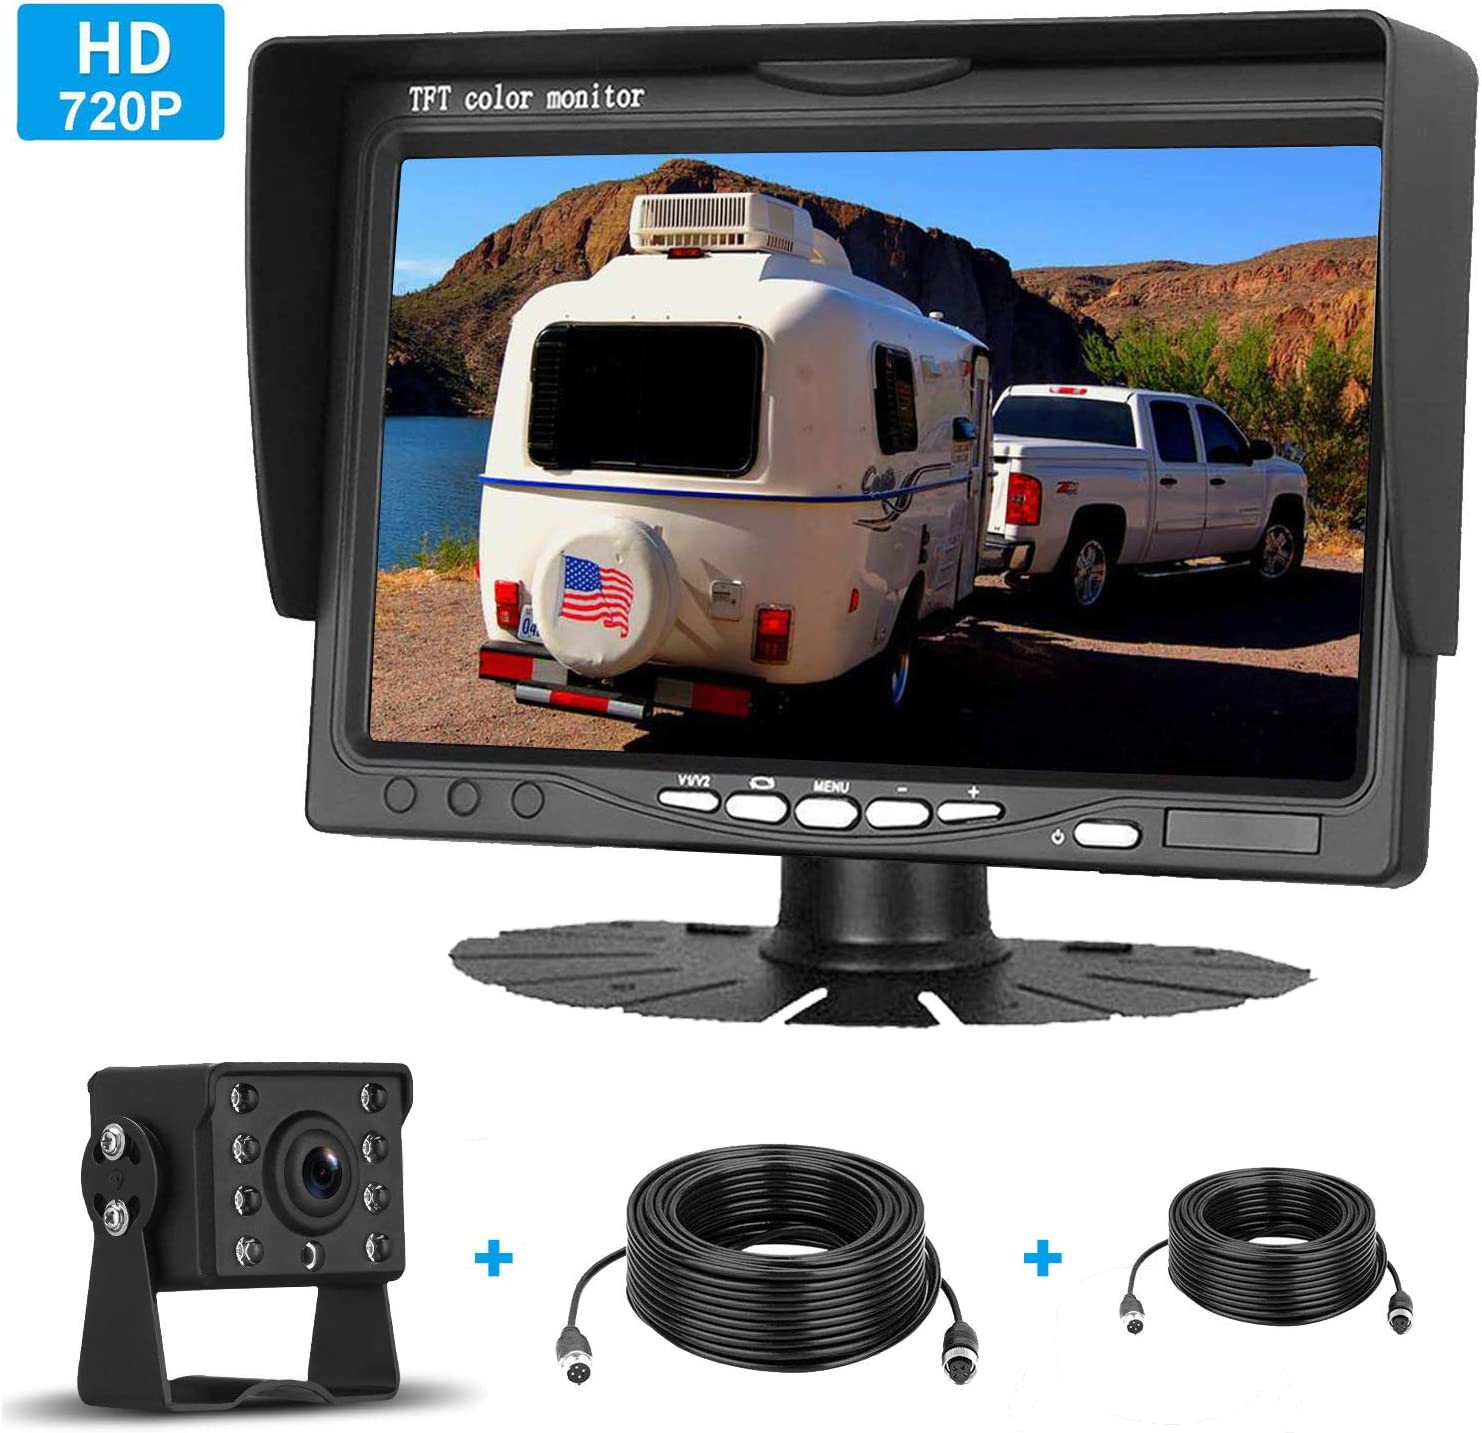 iStrong HD 720P Backup Camera  7 Monitor Kit System For Cars//Trucks//Trailers//Campers//Fifth Wheels  IP69K Waterproof Night Vision Rear//Front View High-Speed Observation System Guide Lines ON//OFF